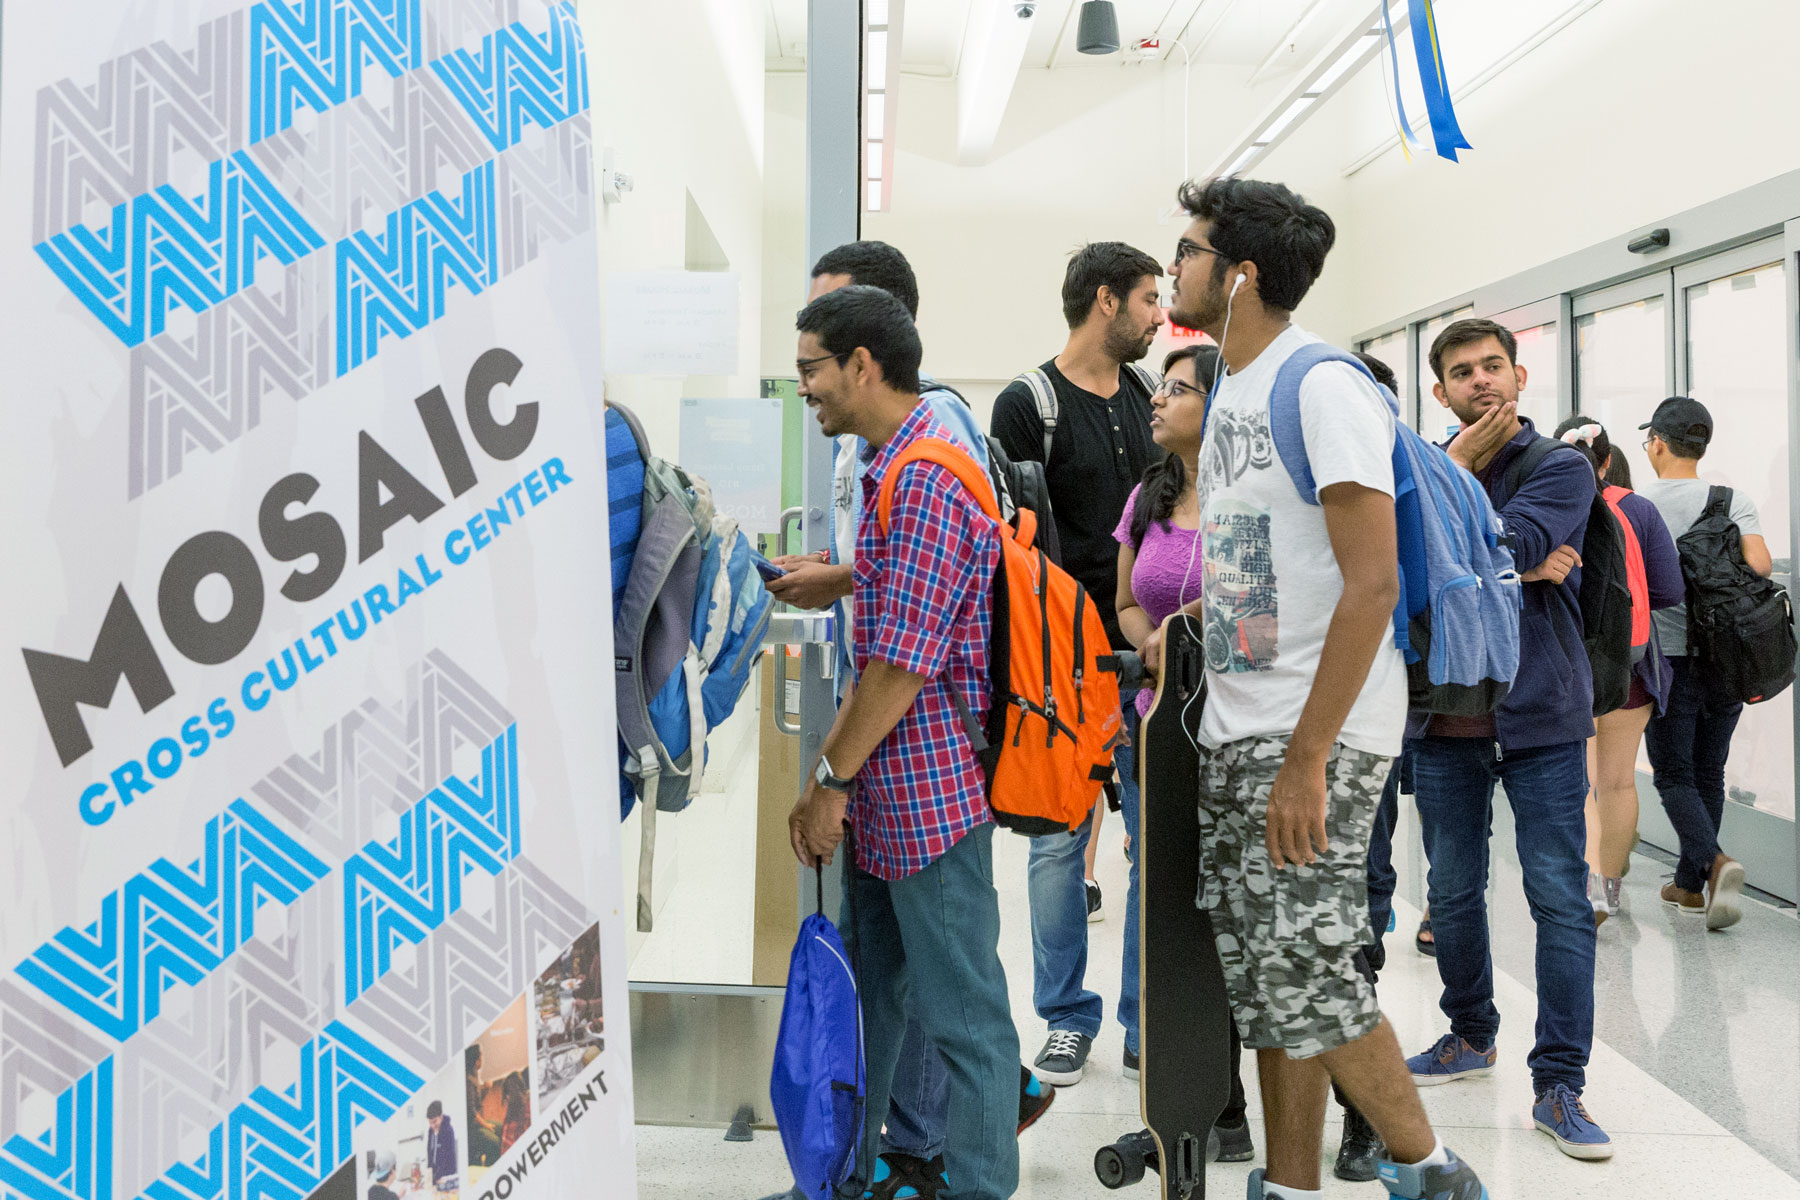 Students entering the MOSAIC Cross Cultural Center at the Student Union.